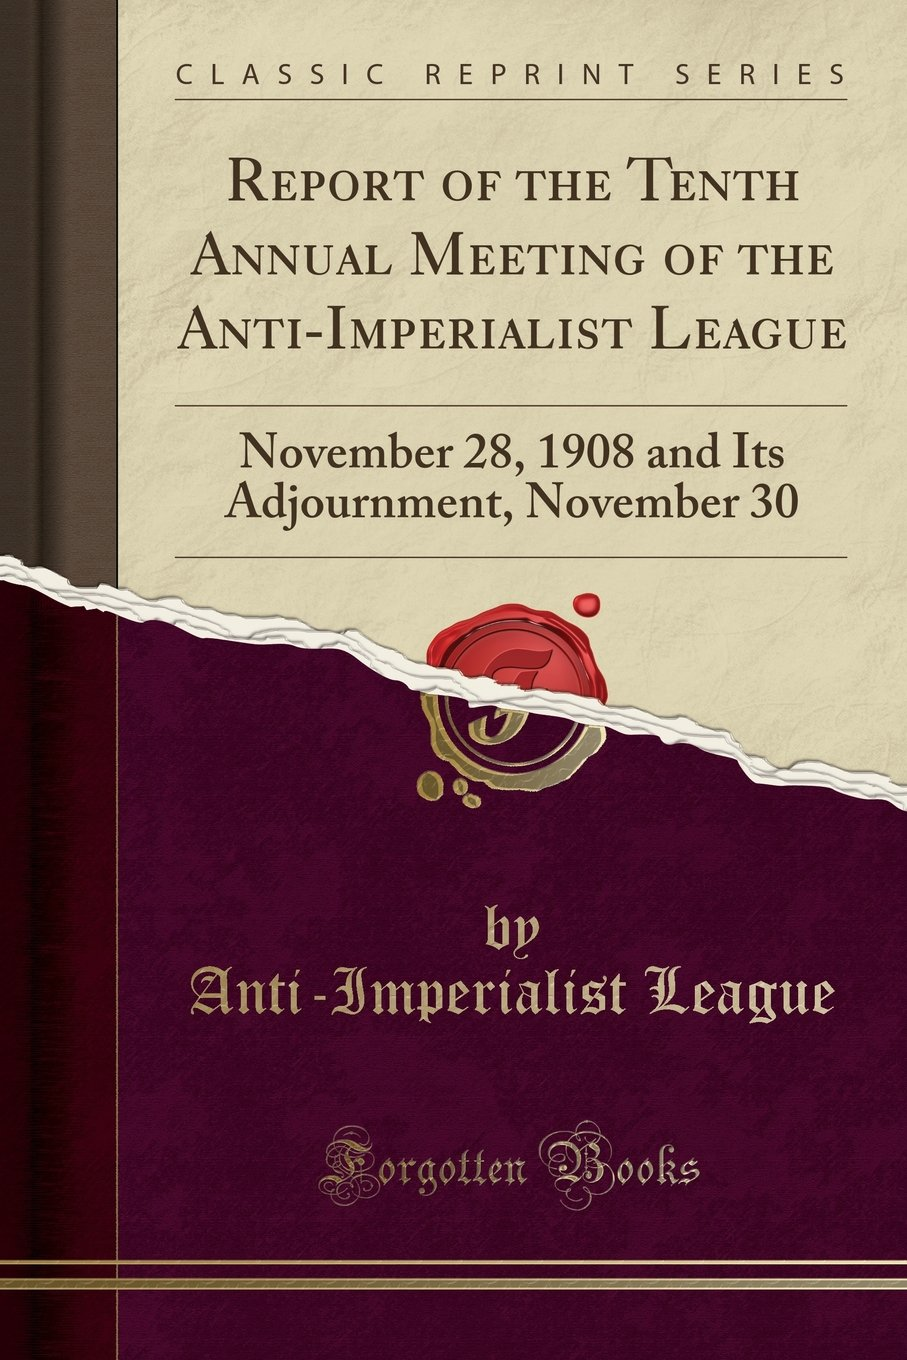 Download Report of the Tenth Annual Meeting of the Anti-Imperialist League: November 28, 1908 and Its Adjournment, November 30 (Classic Reprint) PDF